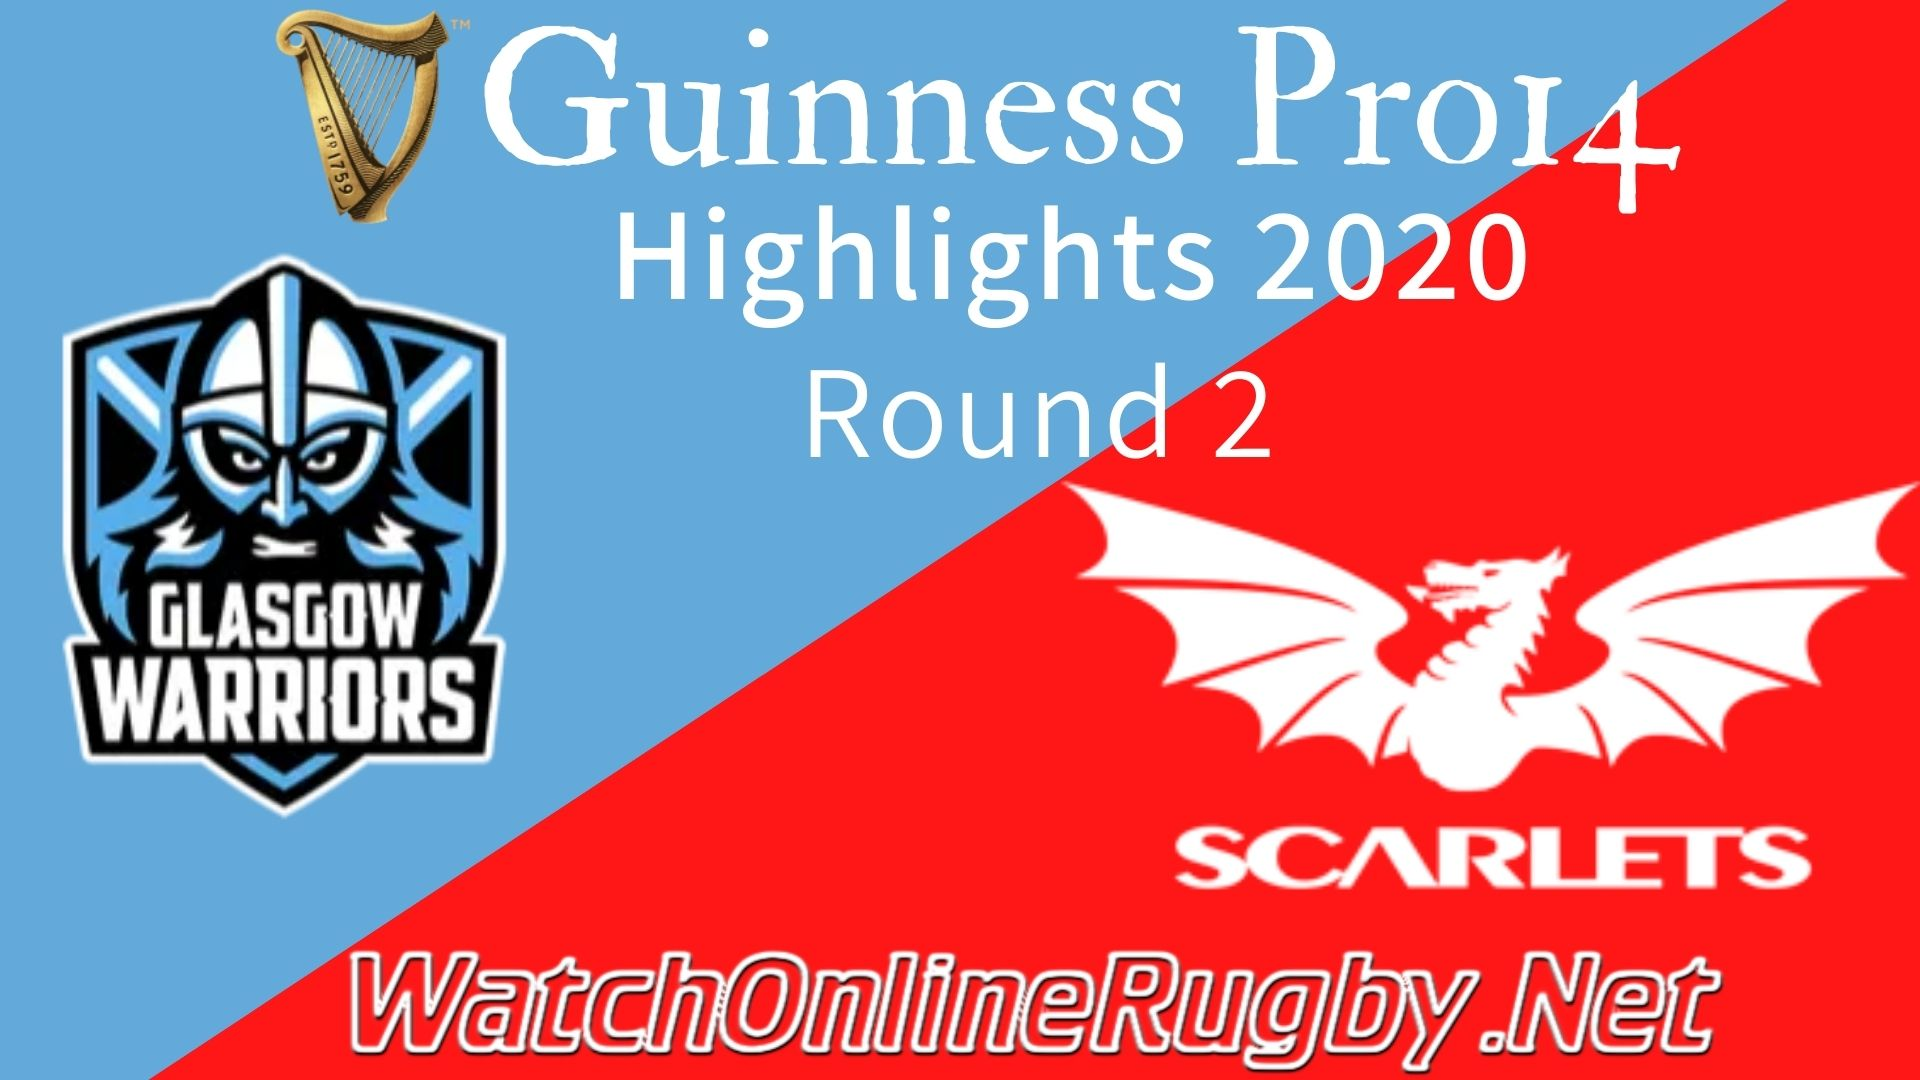 Glasgow Warriors vs Scarlets RD 2 Highlights 2020